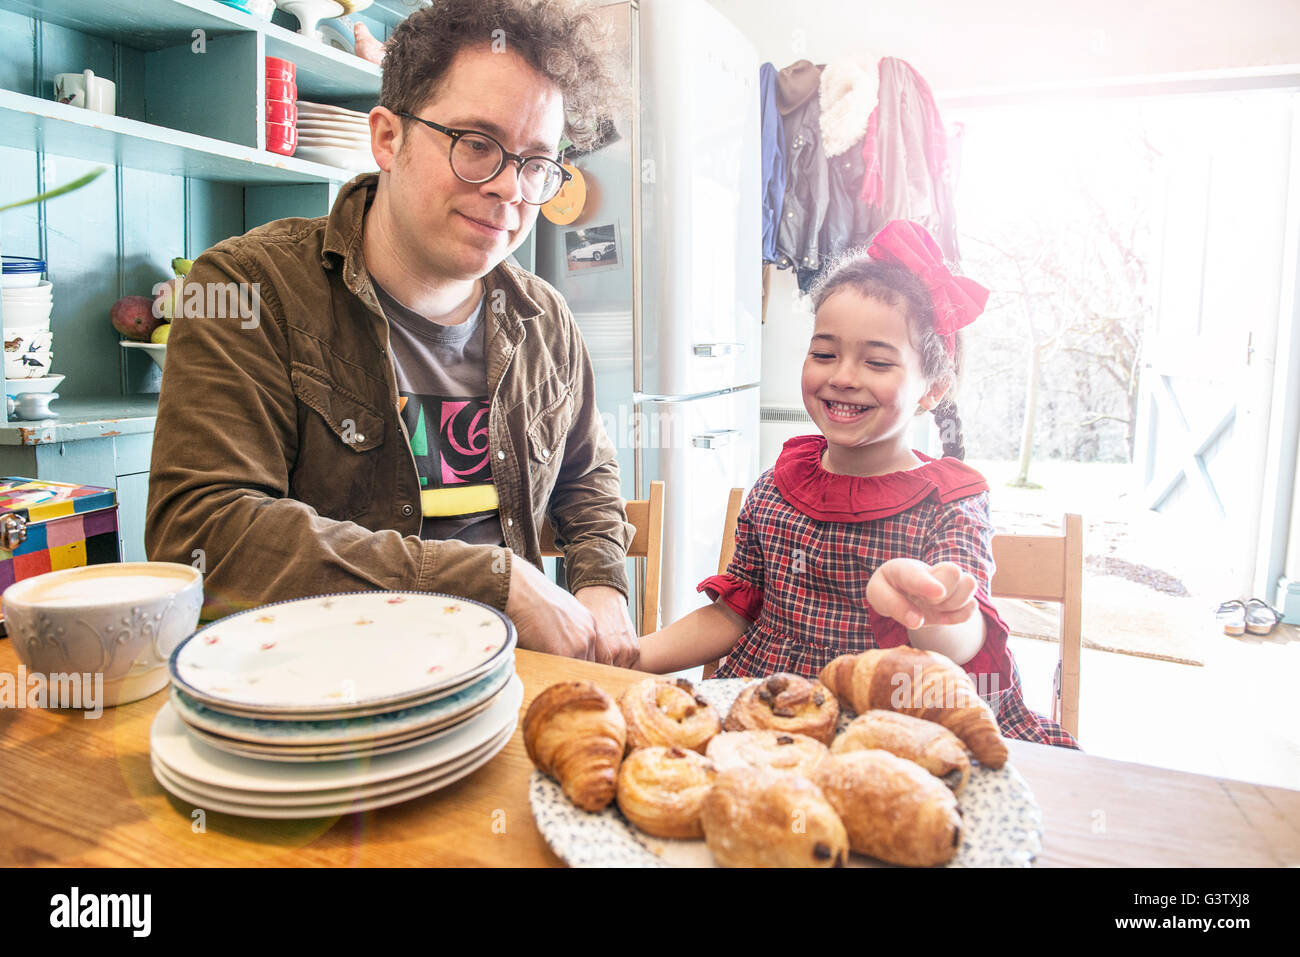 A father sits in his kitchen chatting to his 6year old daughter. - Stock Image